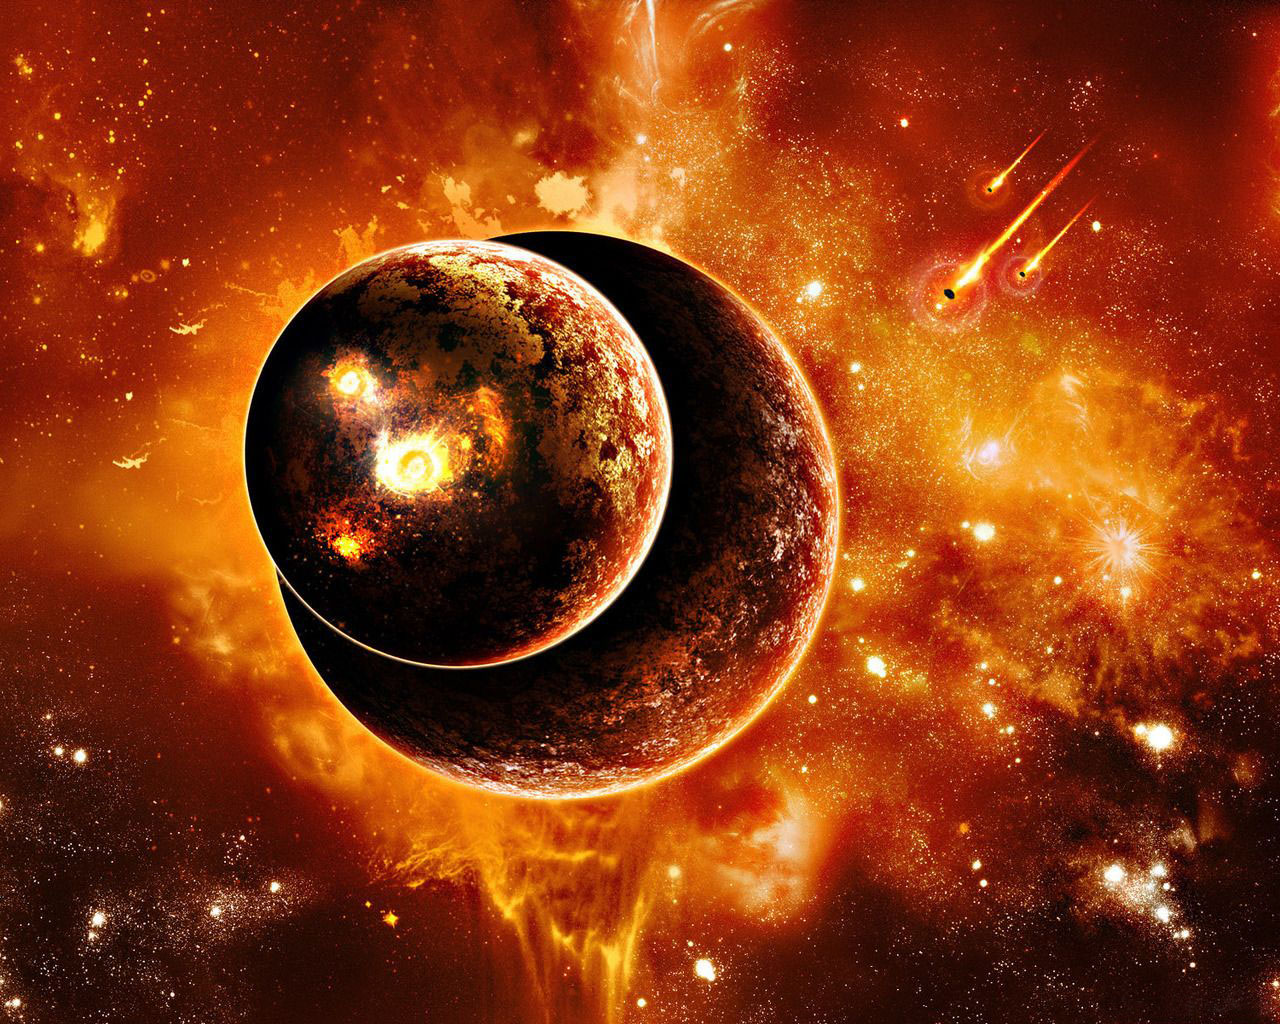 3d high quality galaxy planets very beautiful wallpaper for laptops 1280x1024